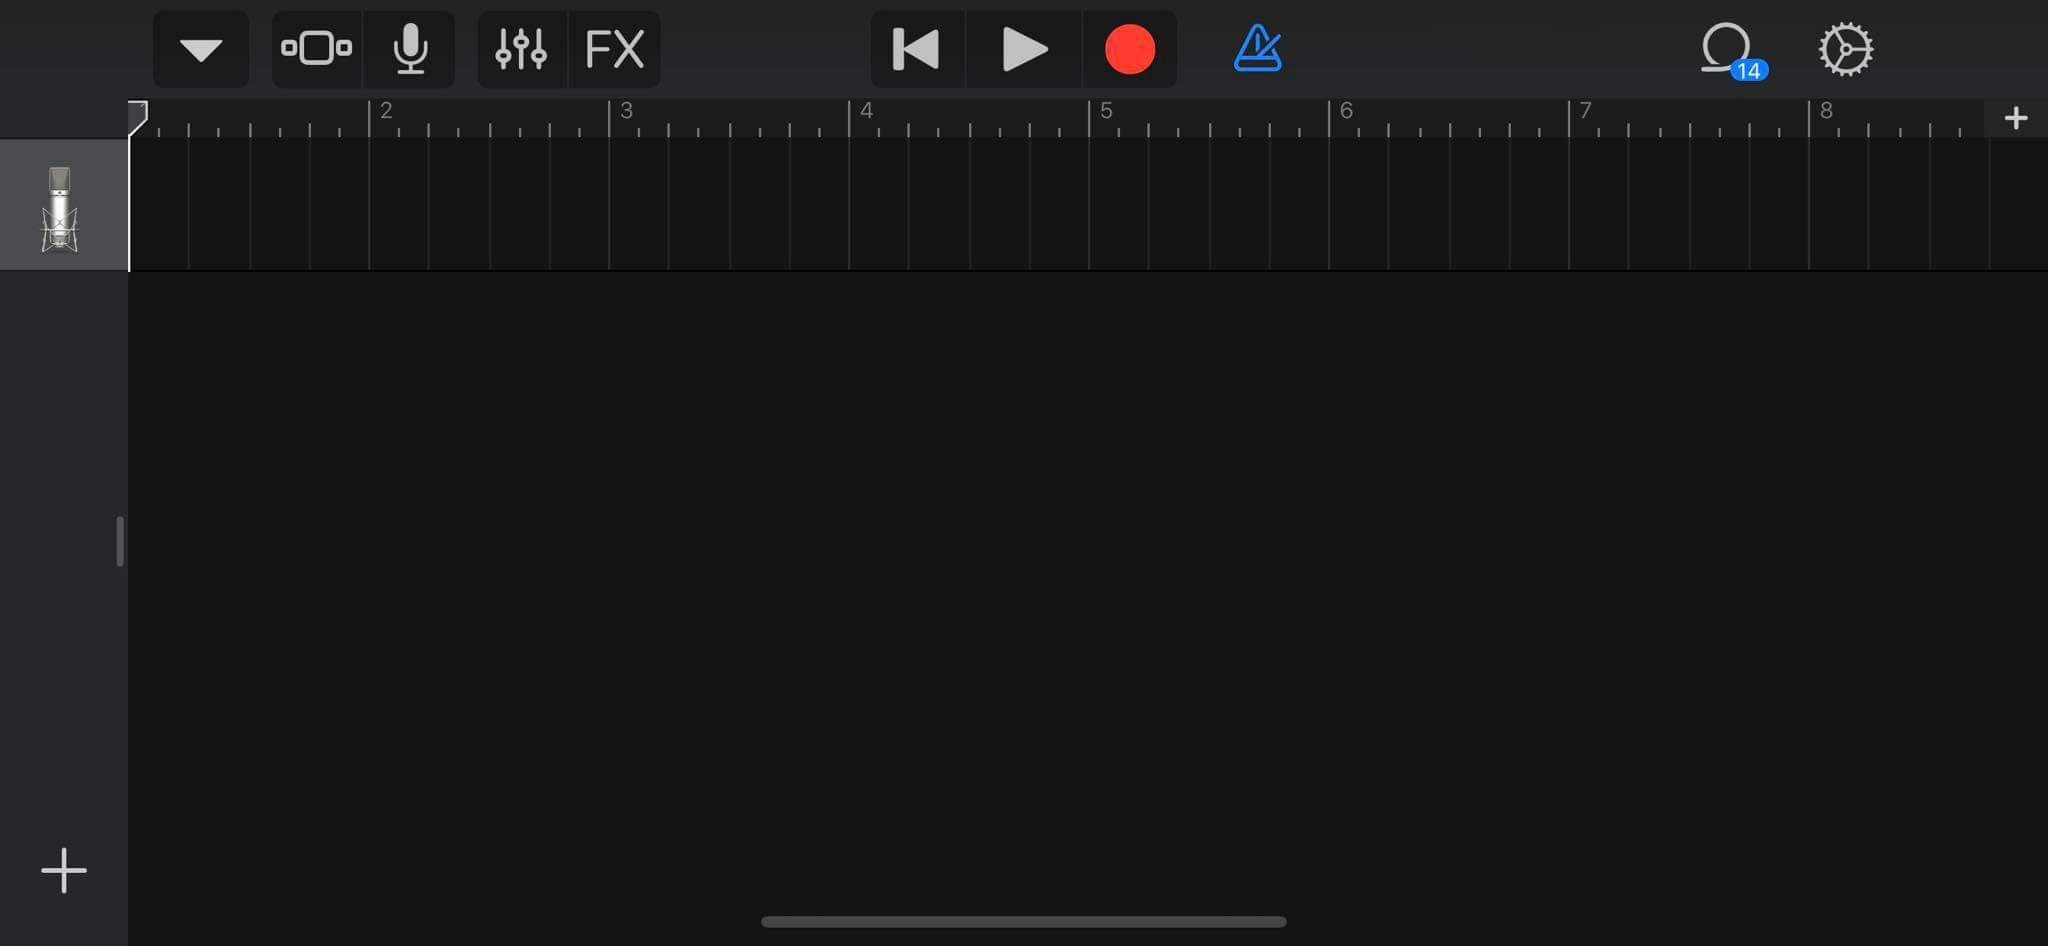 how to set any song as ringtone in iPhone